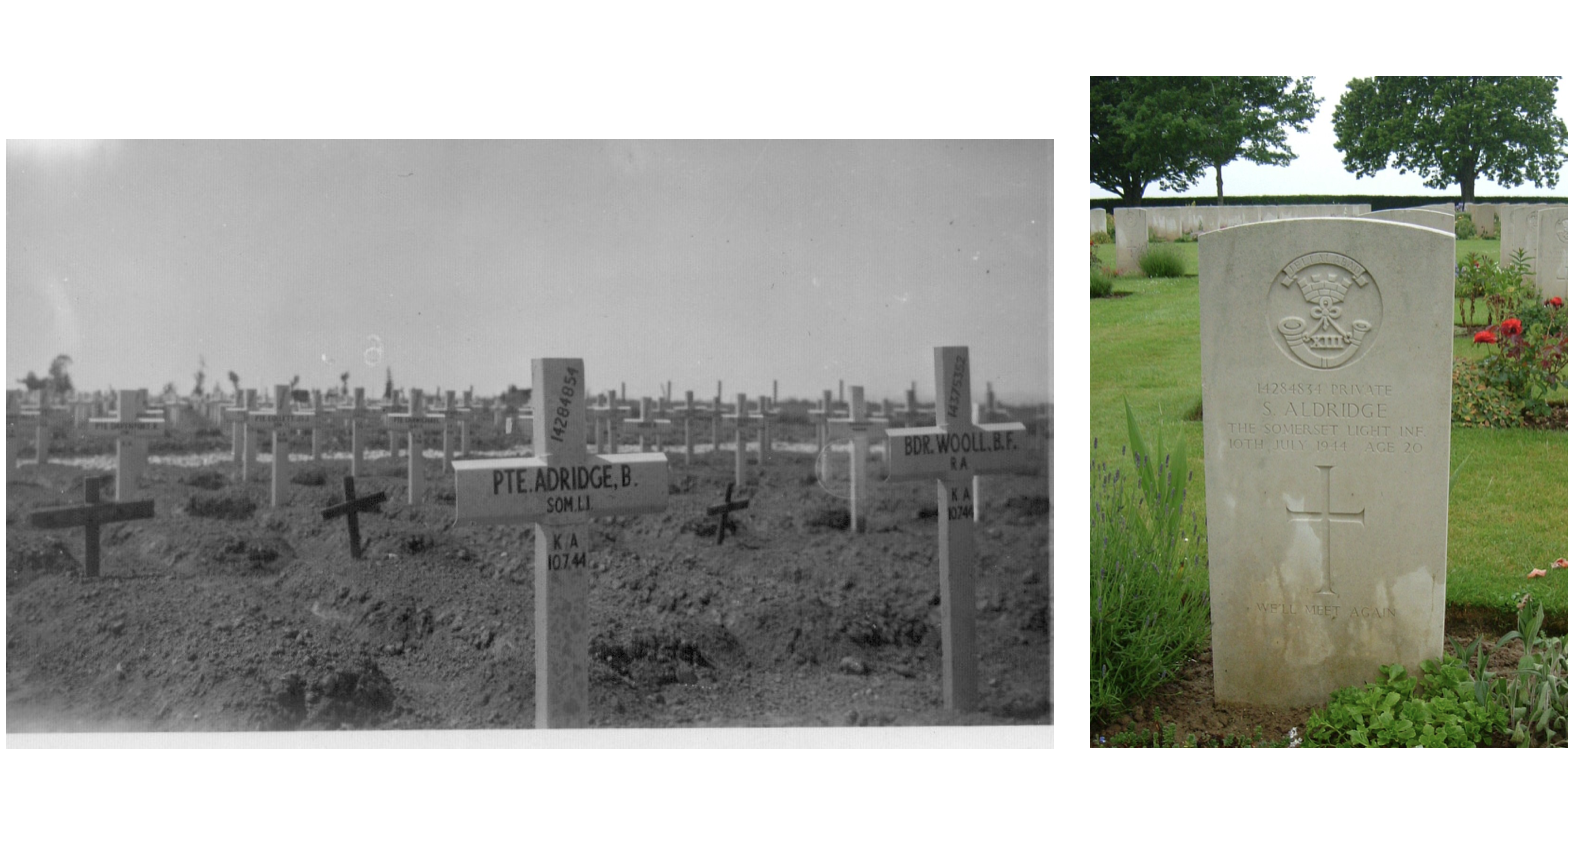 Archive image of Sydney's grave from 1940s, and modern day gravestone